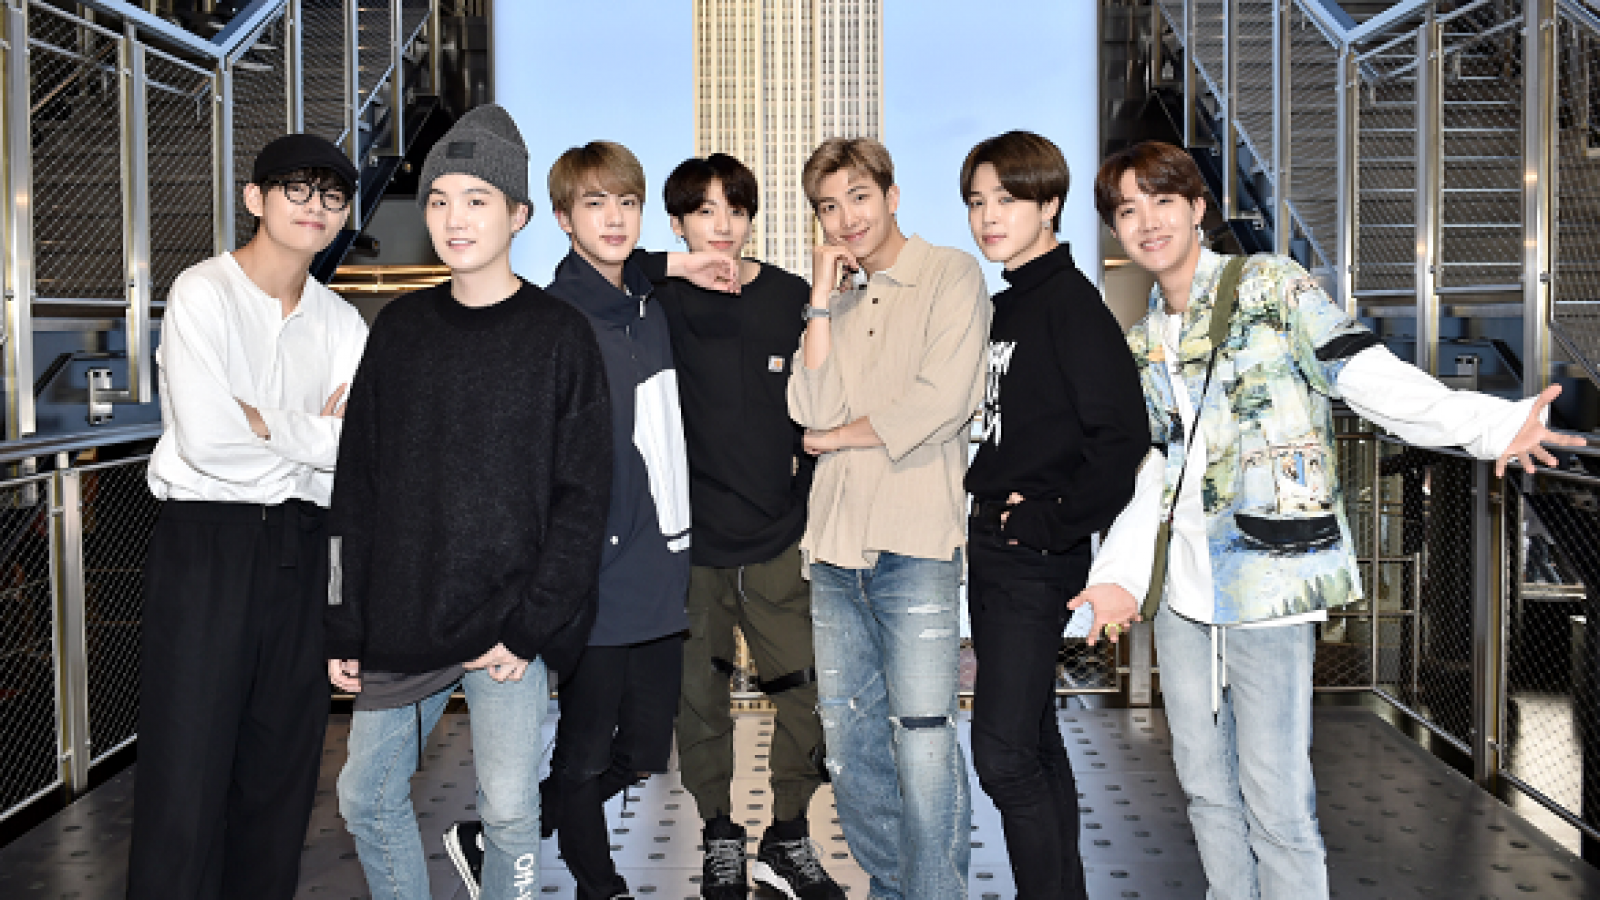 bts back after month long extended break